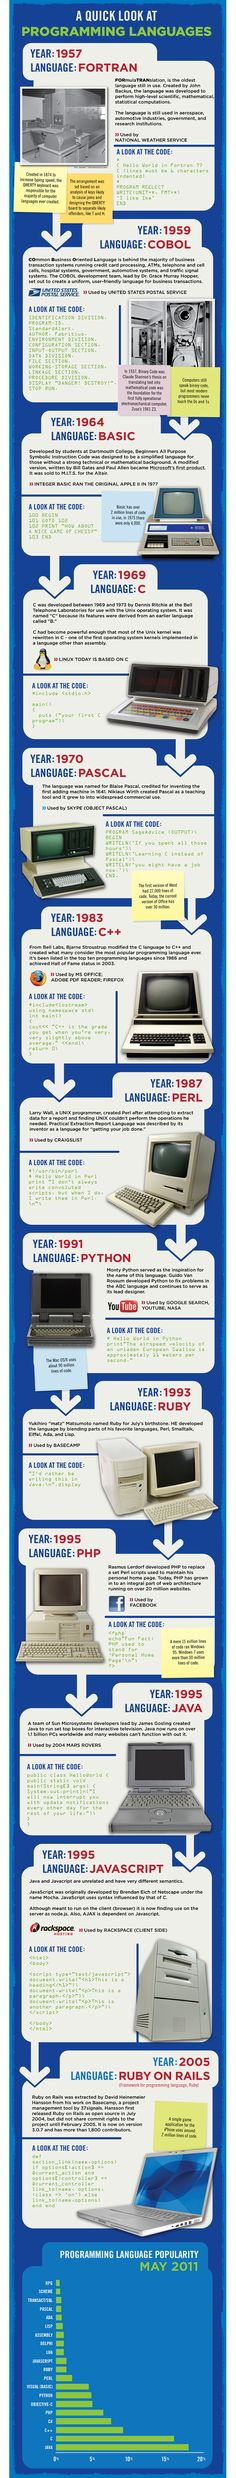 The Evolution of Languages